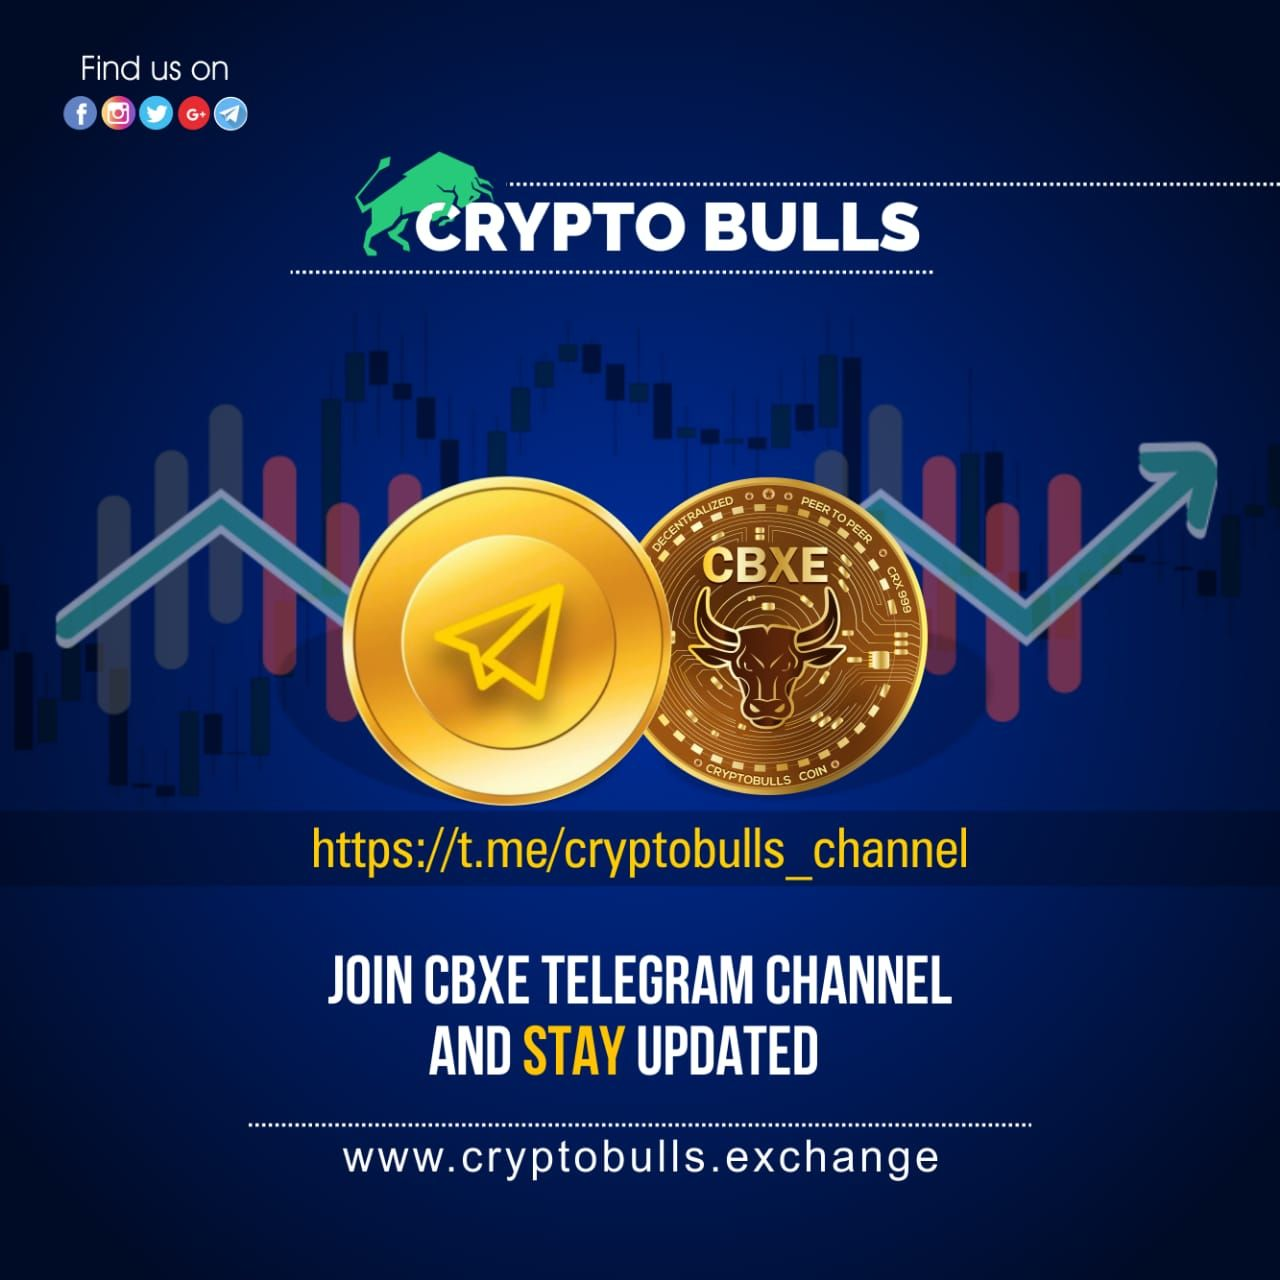 Join #CBXE #Telegram Channel and Stay Updated #crypto #usdtrading